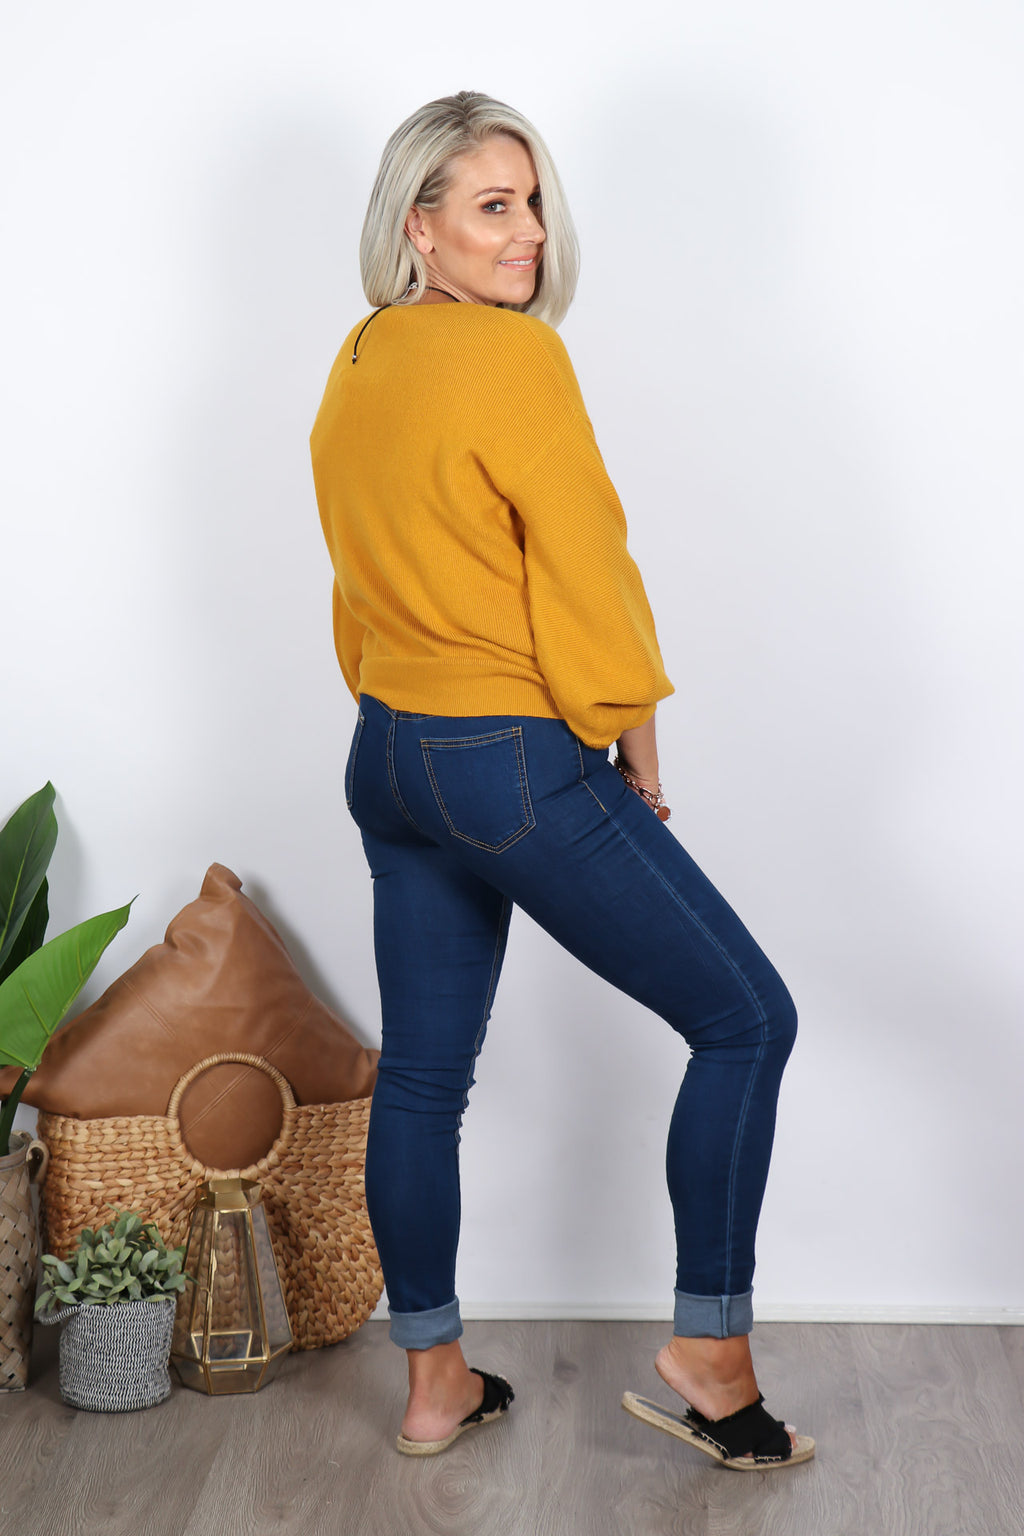 Dexter Knit in Mustard